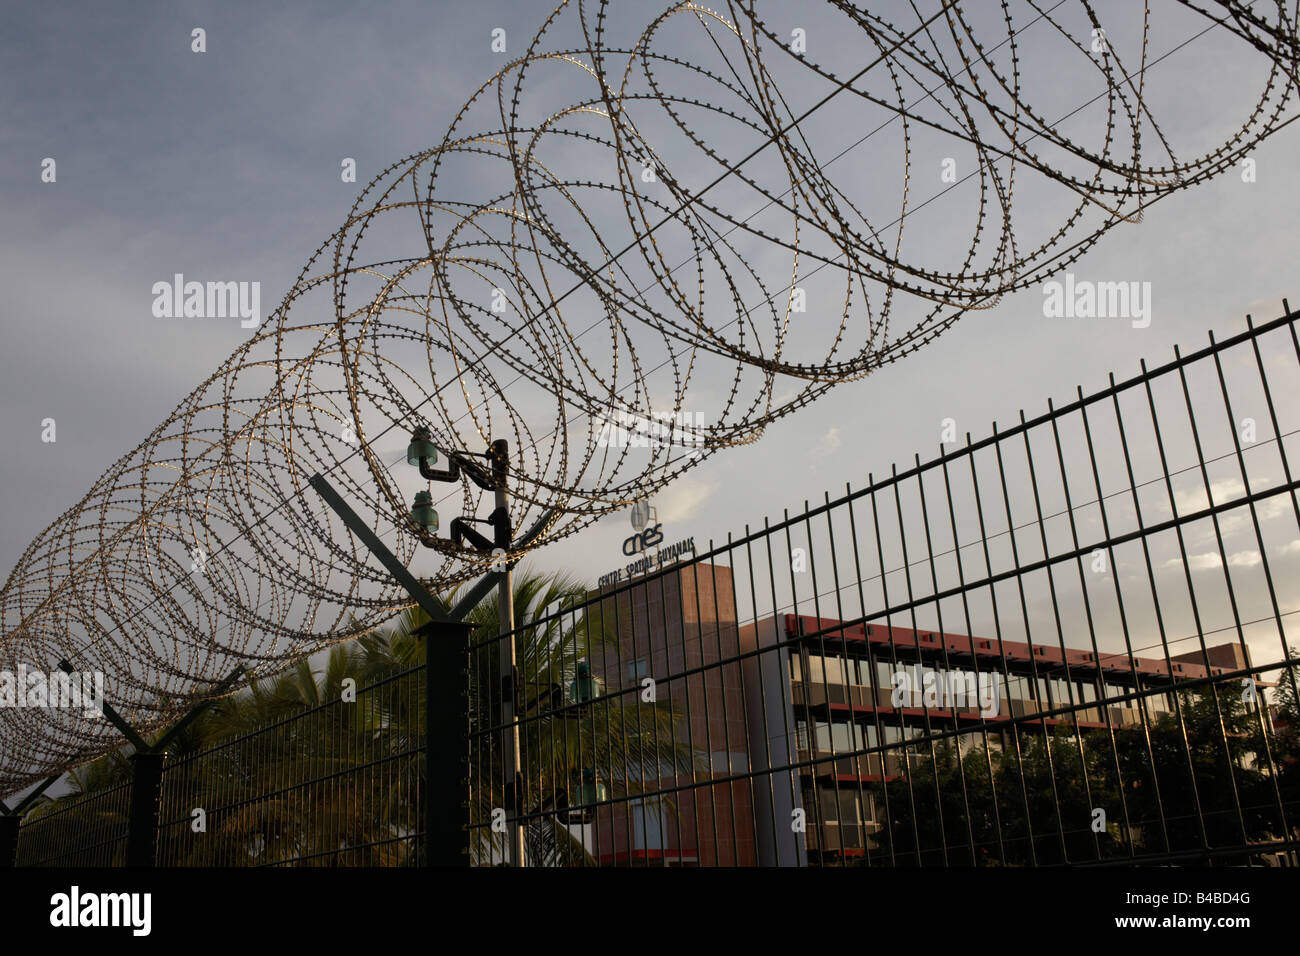 Secure razor wire and fencing keeps trespassers out from the European Space Agency's Neptune buildings in French - Stock Image